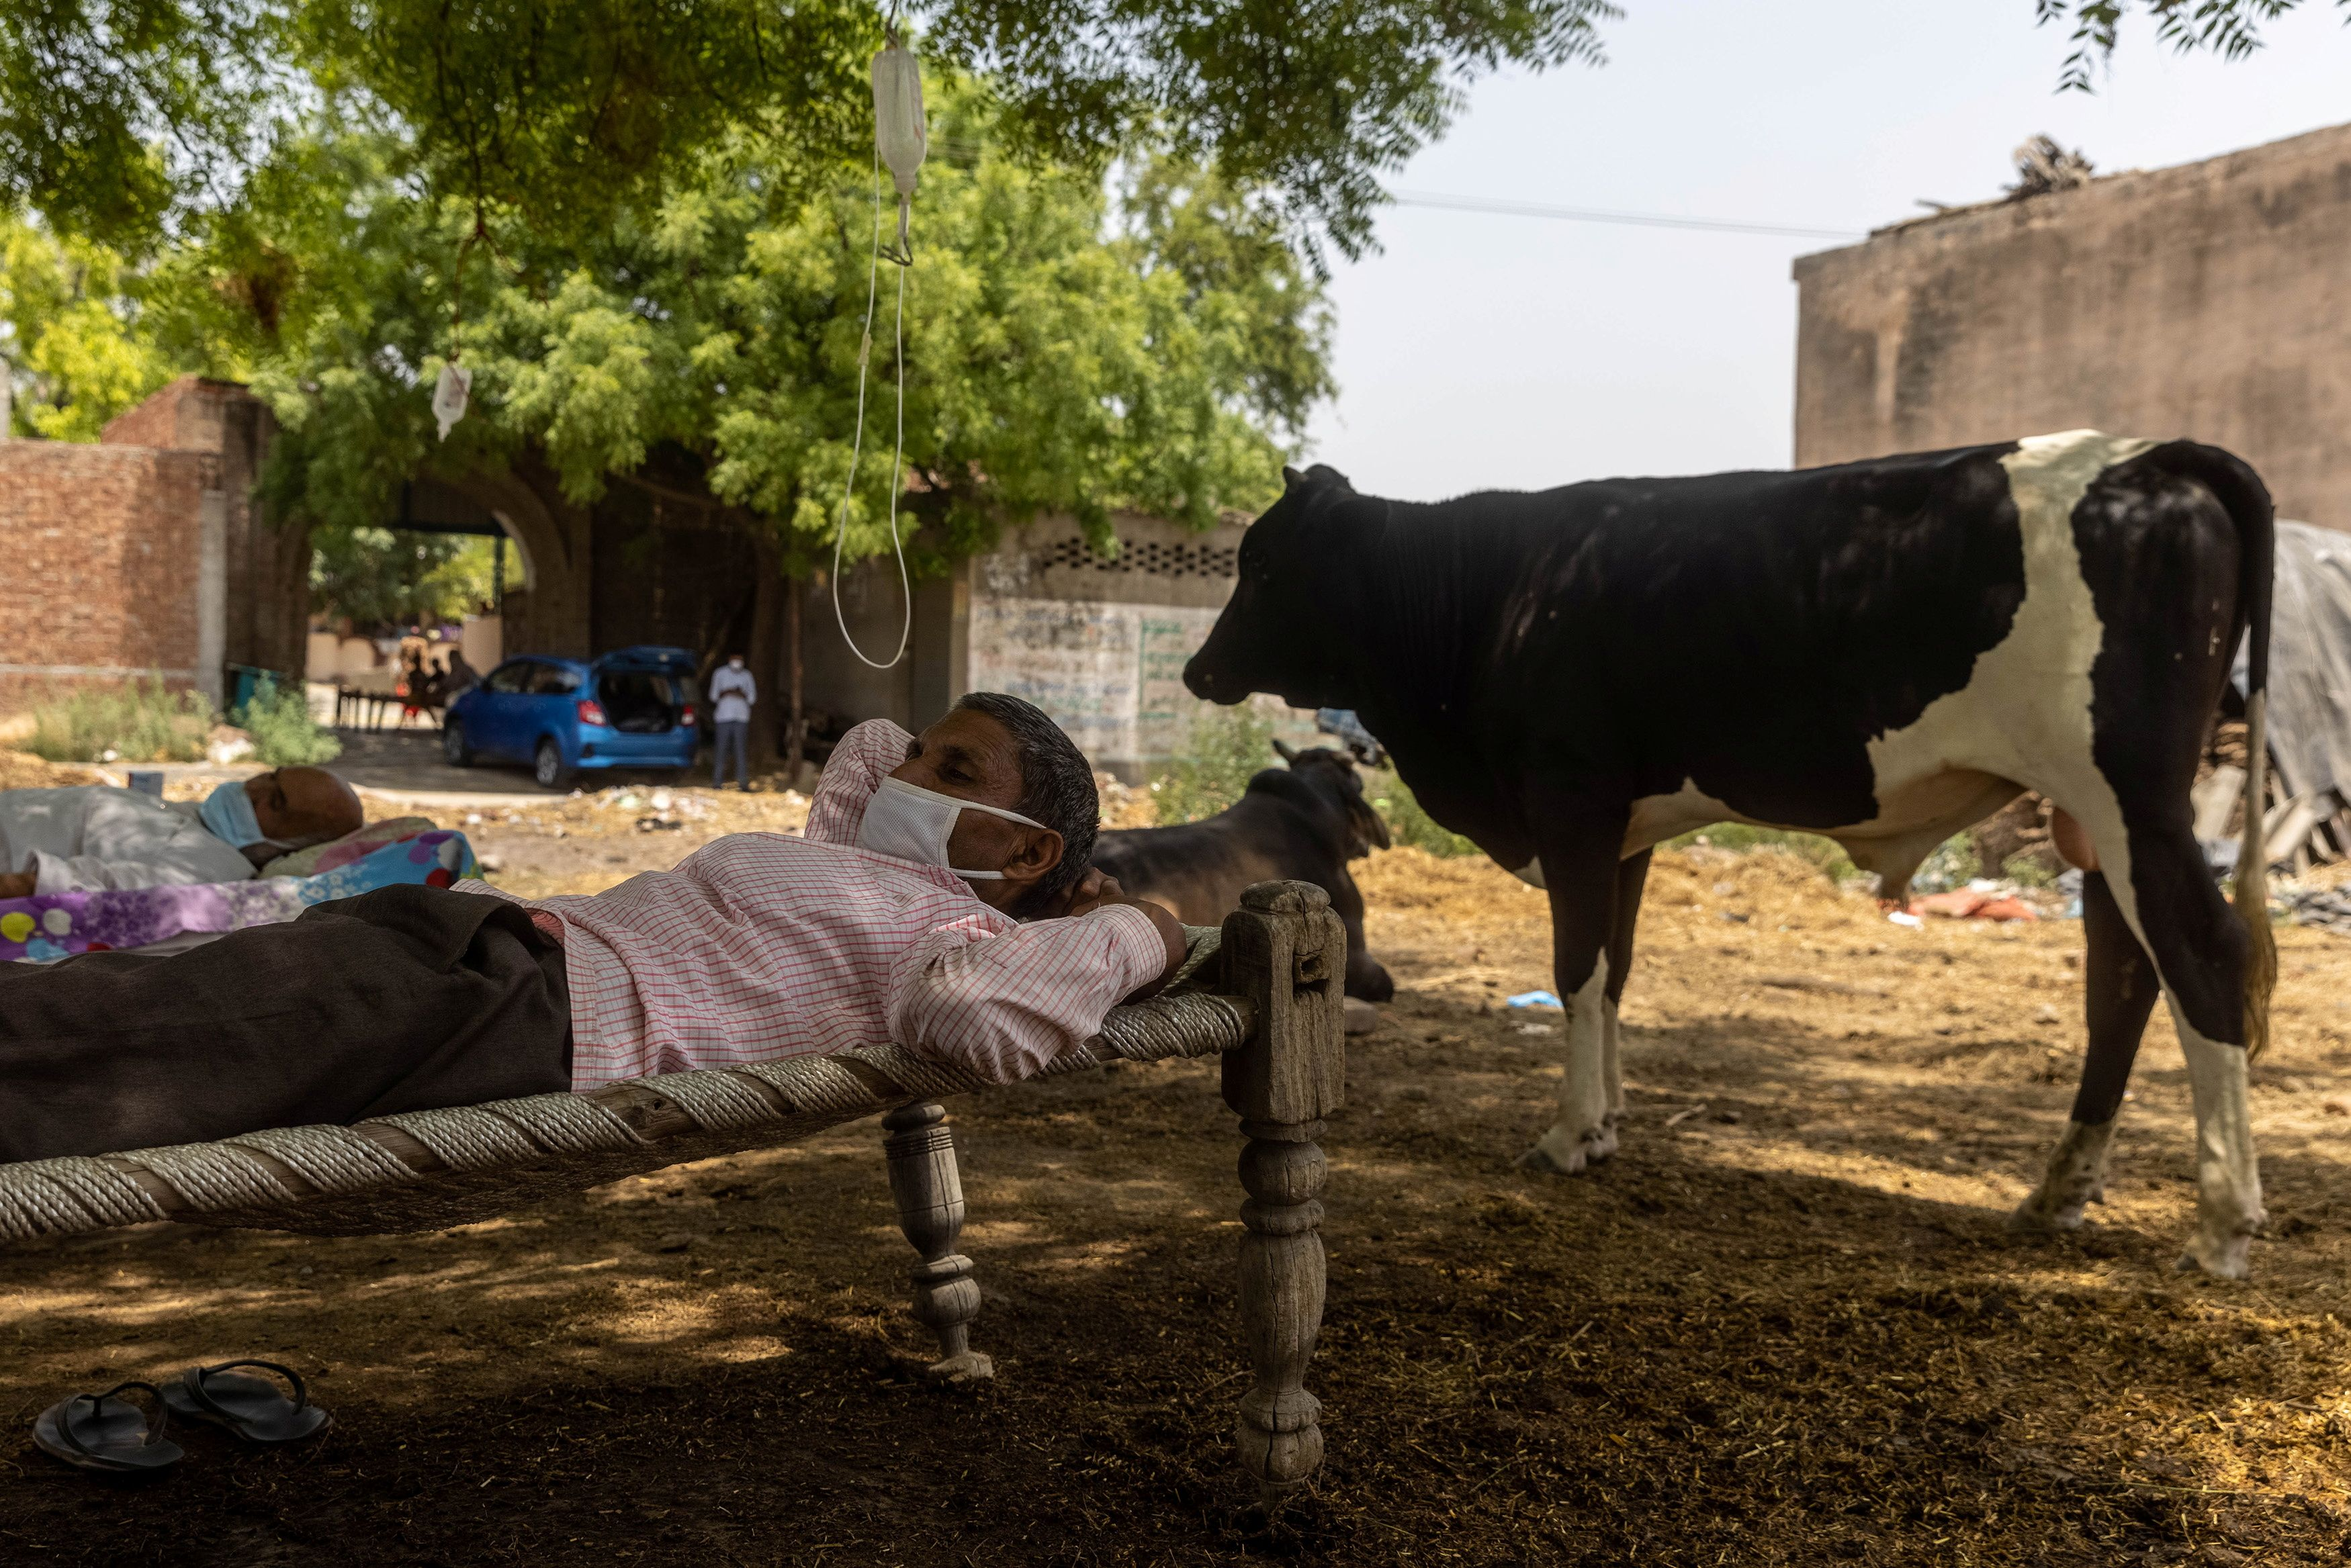 Roshan Lal, 48, a villager with a breathing difficulty rests in a cot as he receives treatment at a makeshift open-air clinic, amidst the spread of the coronavirus disease (COVID-19), in Mewla Gopalgarh village, in Jewar district, in the northern state of Uttar Pradesh, India, May 16, 2021. Picture taken May 16, 2021. REUTERS/Danish Siddiqui